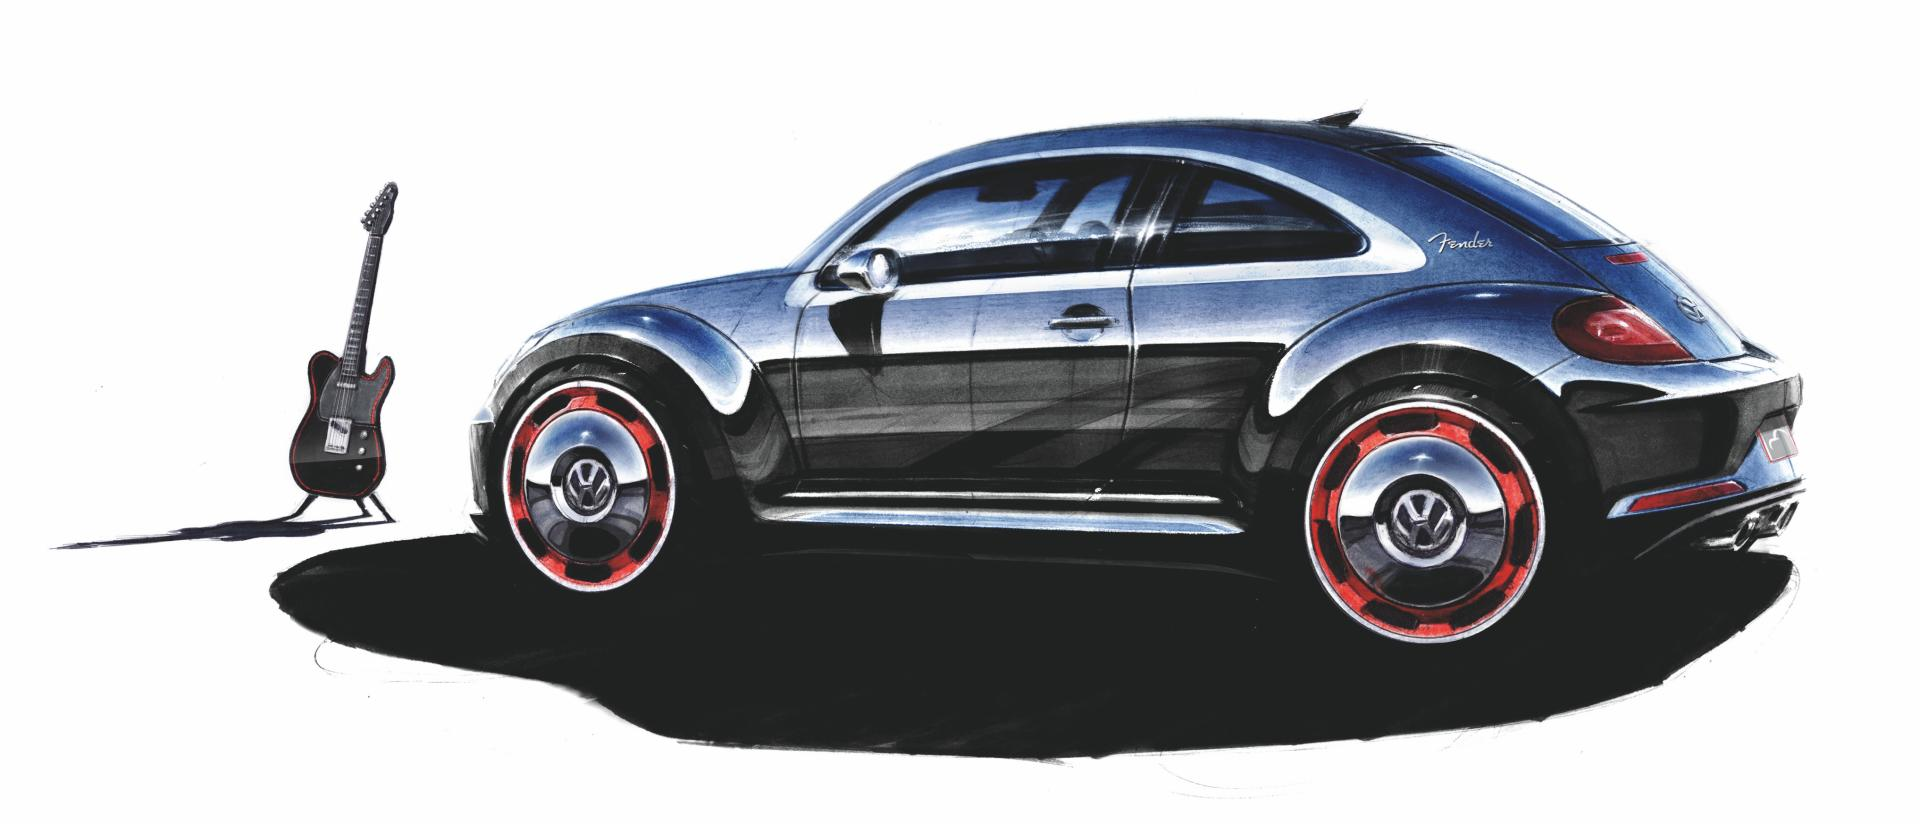 2012 Volkswagen Beetle Fender News And Information